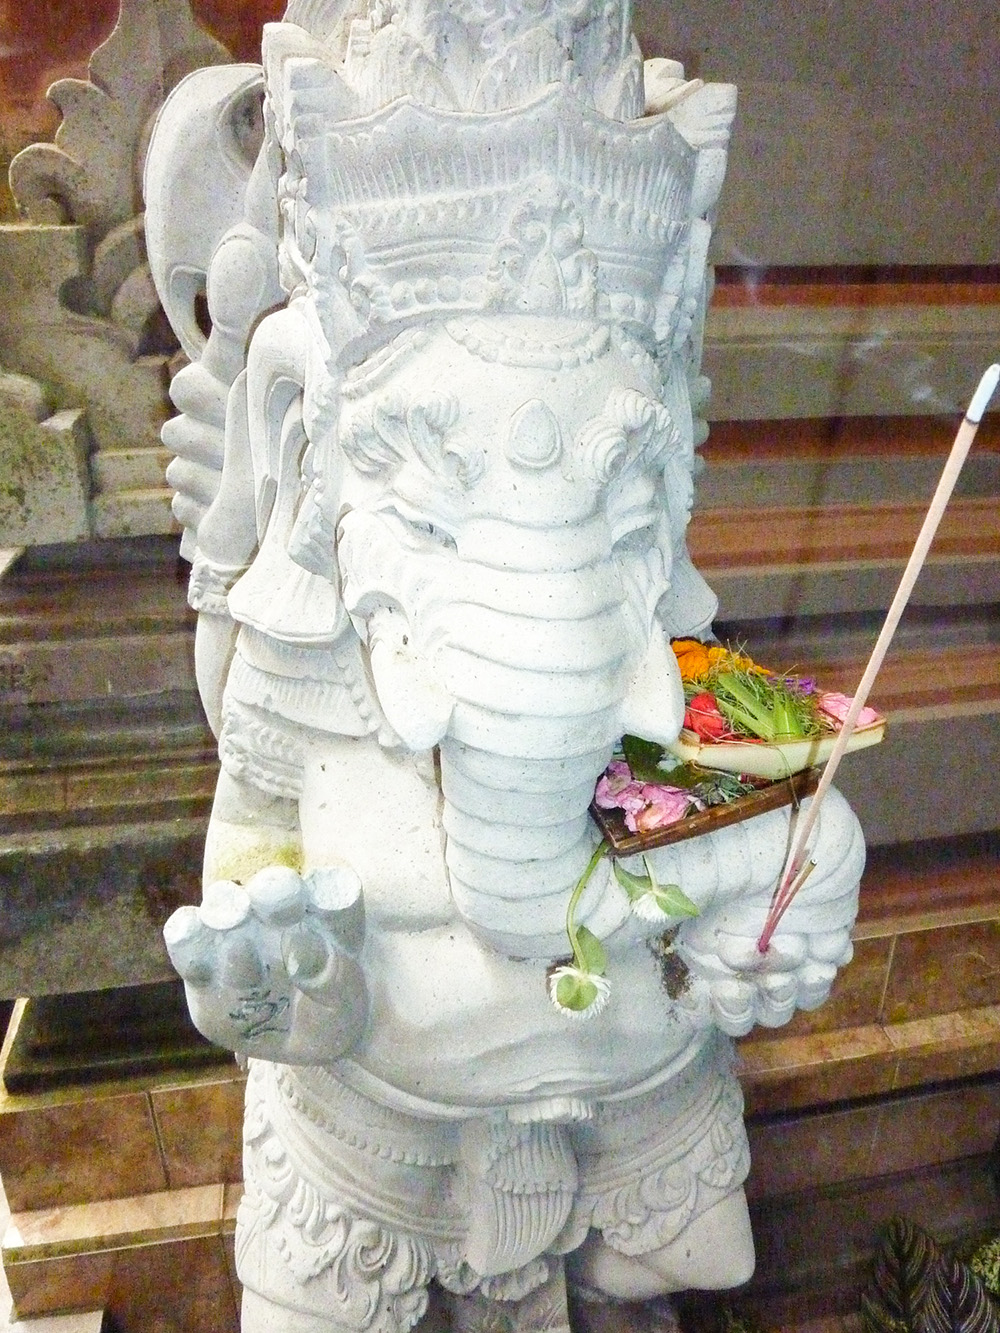 A canang sari offering tucked into a Ganesh statue.